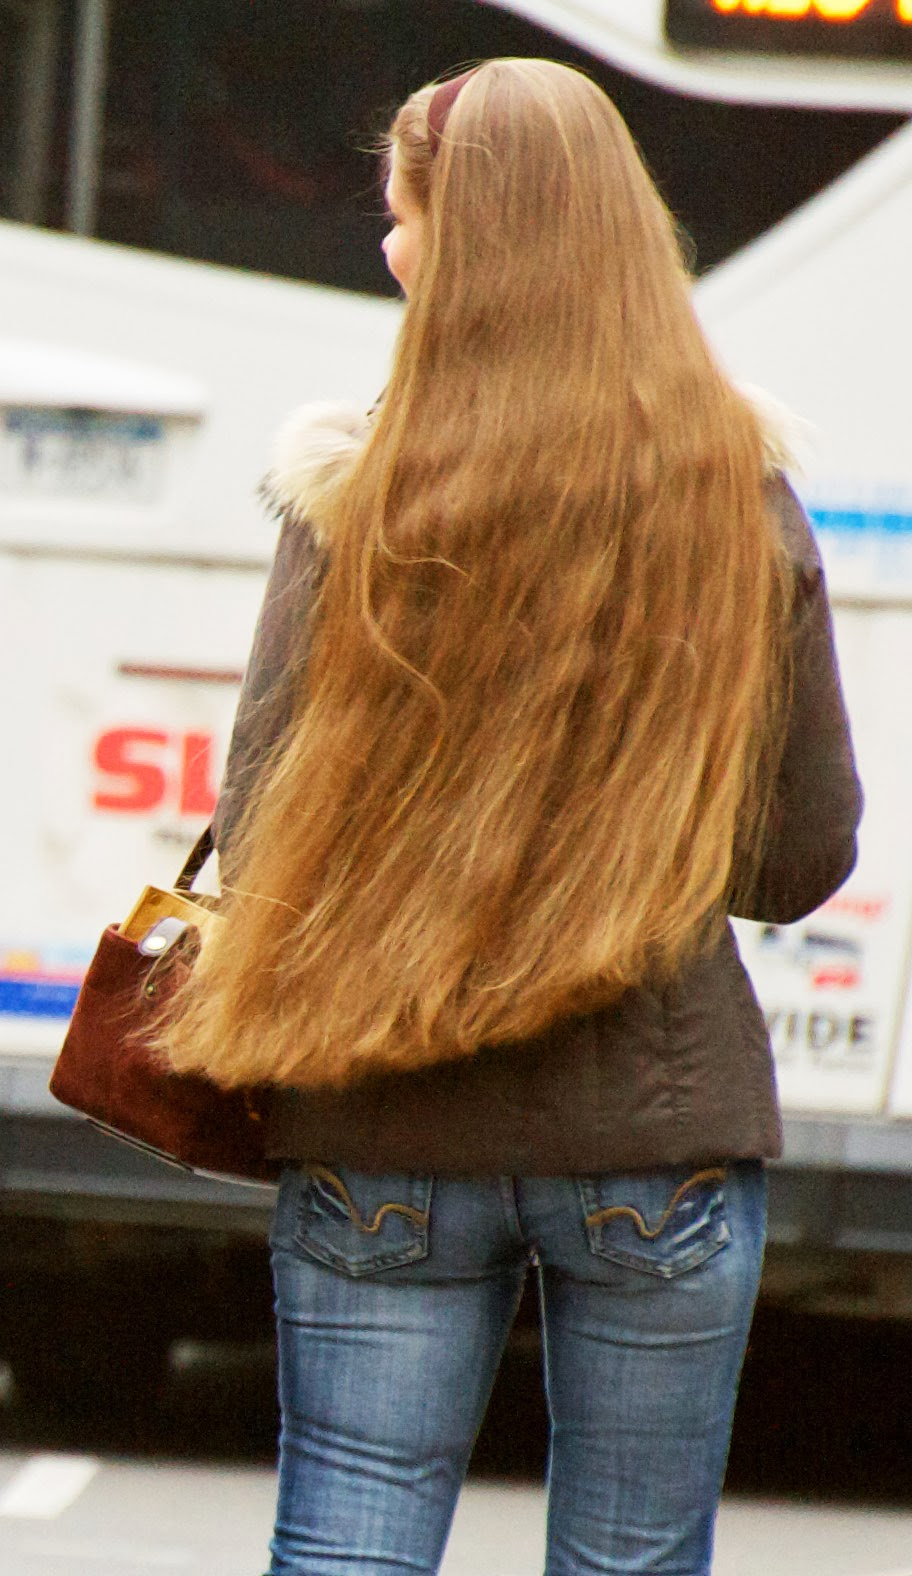 Long Haired Women Hall Of Fame Candid With Incredible Hair